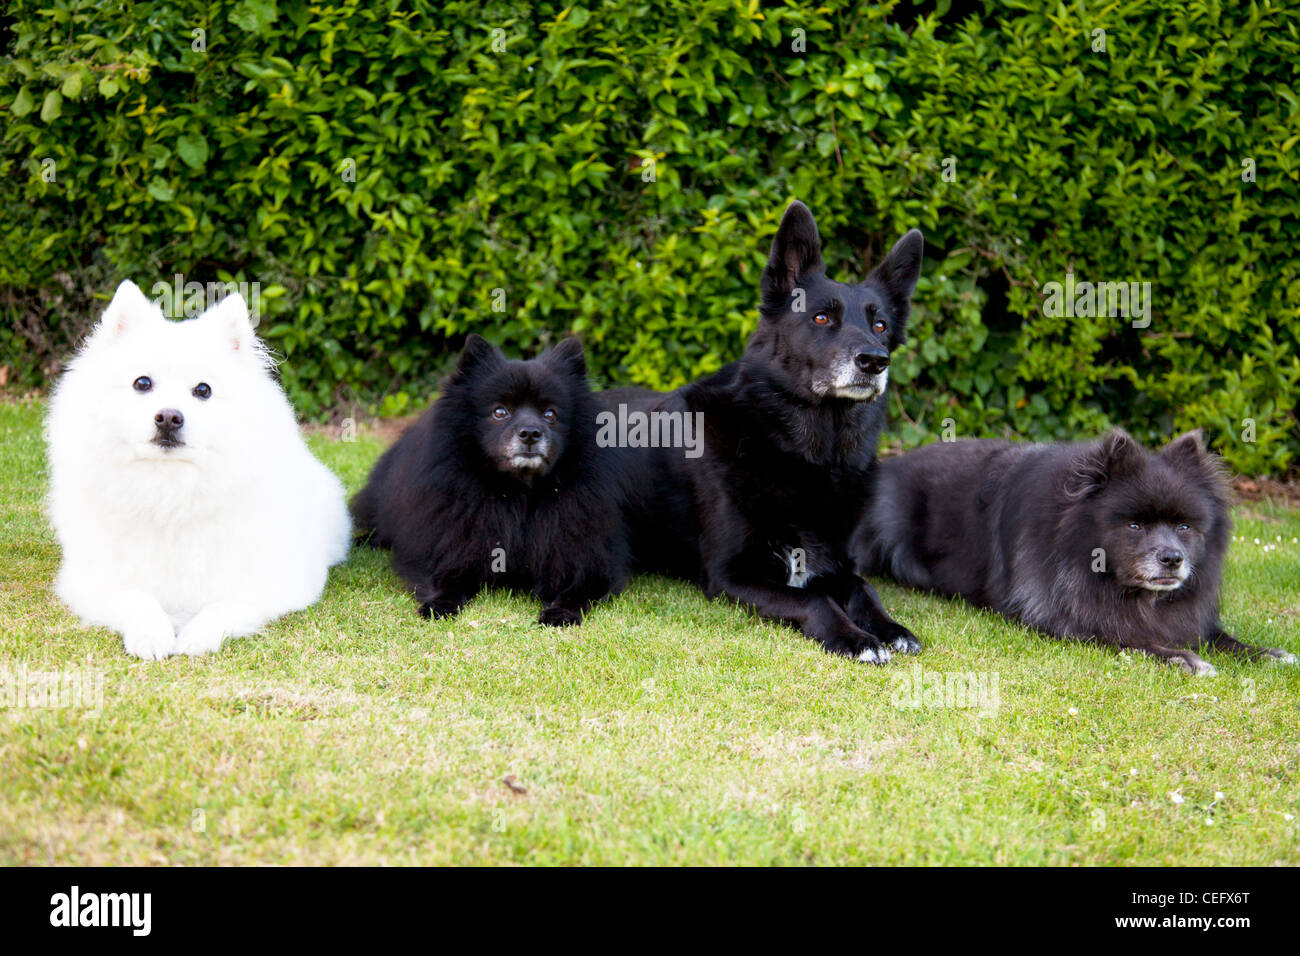 White Japanese Spitz Pet Dog Two German Spitz Dogs And A Black